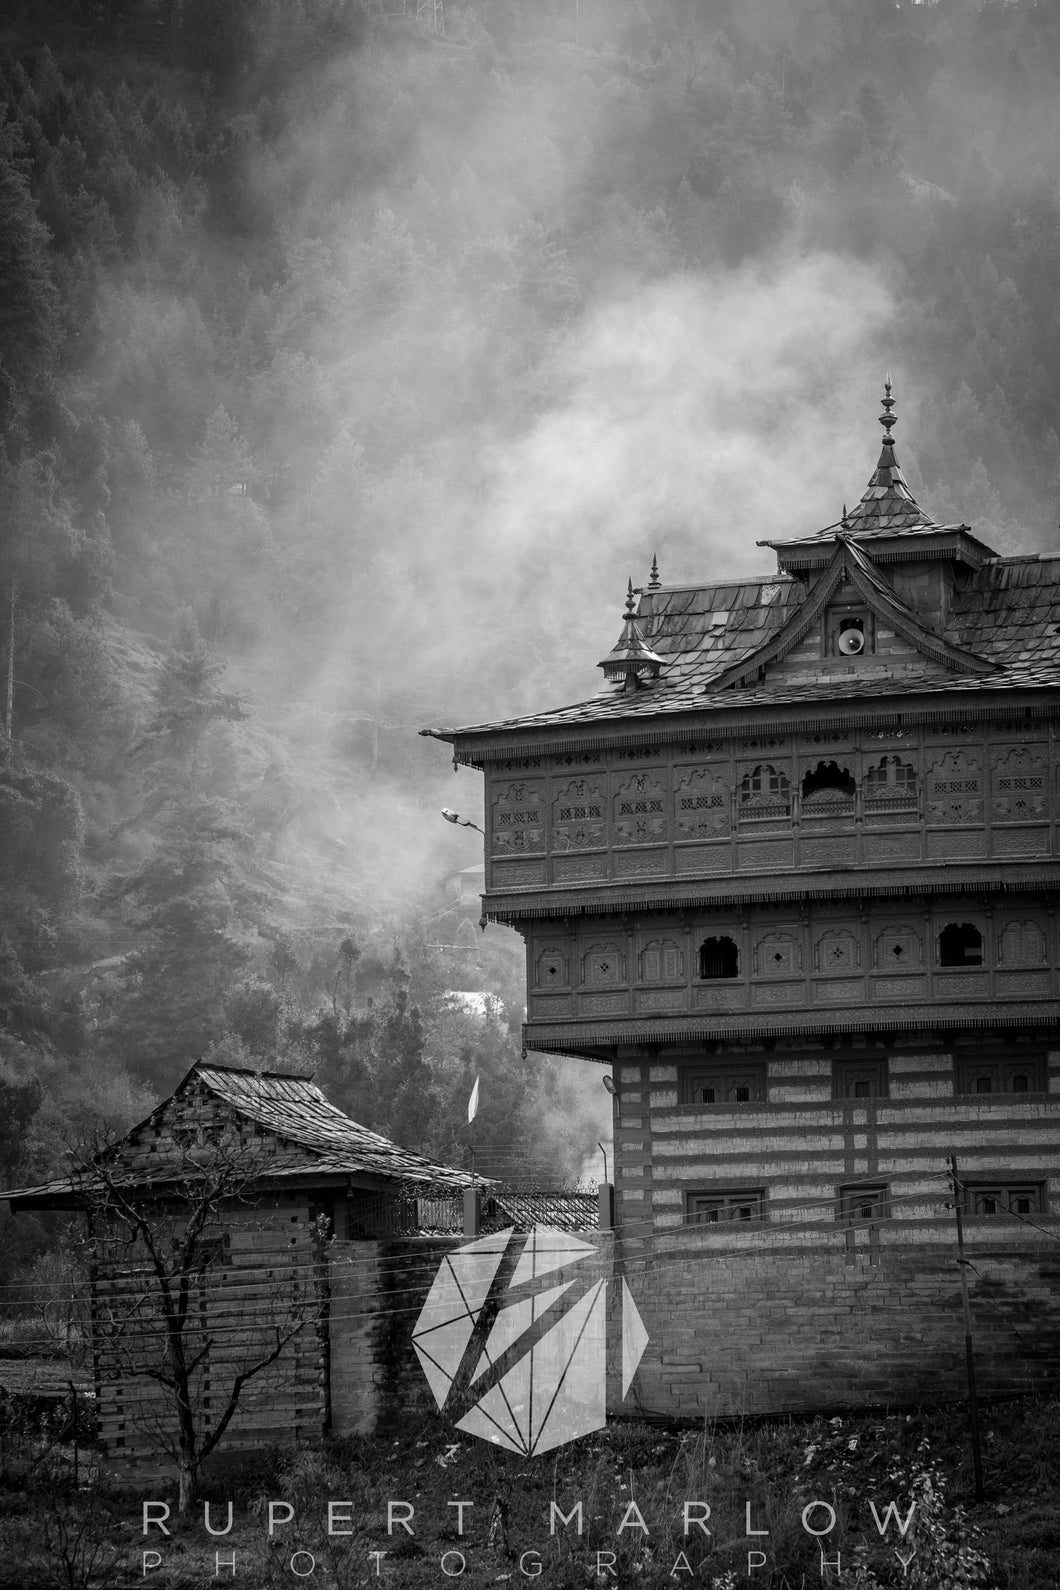 Sarahan's Royal Temple.  This was a Palace and place of worship for the people of Sarahan. It is high in the northern mountains and in this black and white image, surrounded by smoke or mist, with the trees of the mountin behind it. Shot in Sarahan, India by Rupert Marlow fine art documentary photographer in 2015